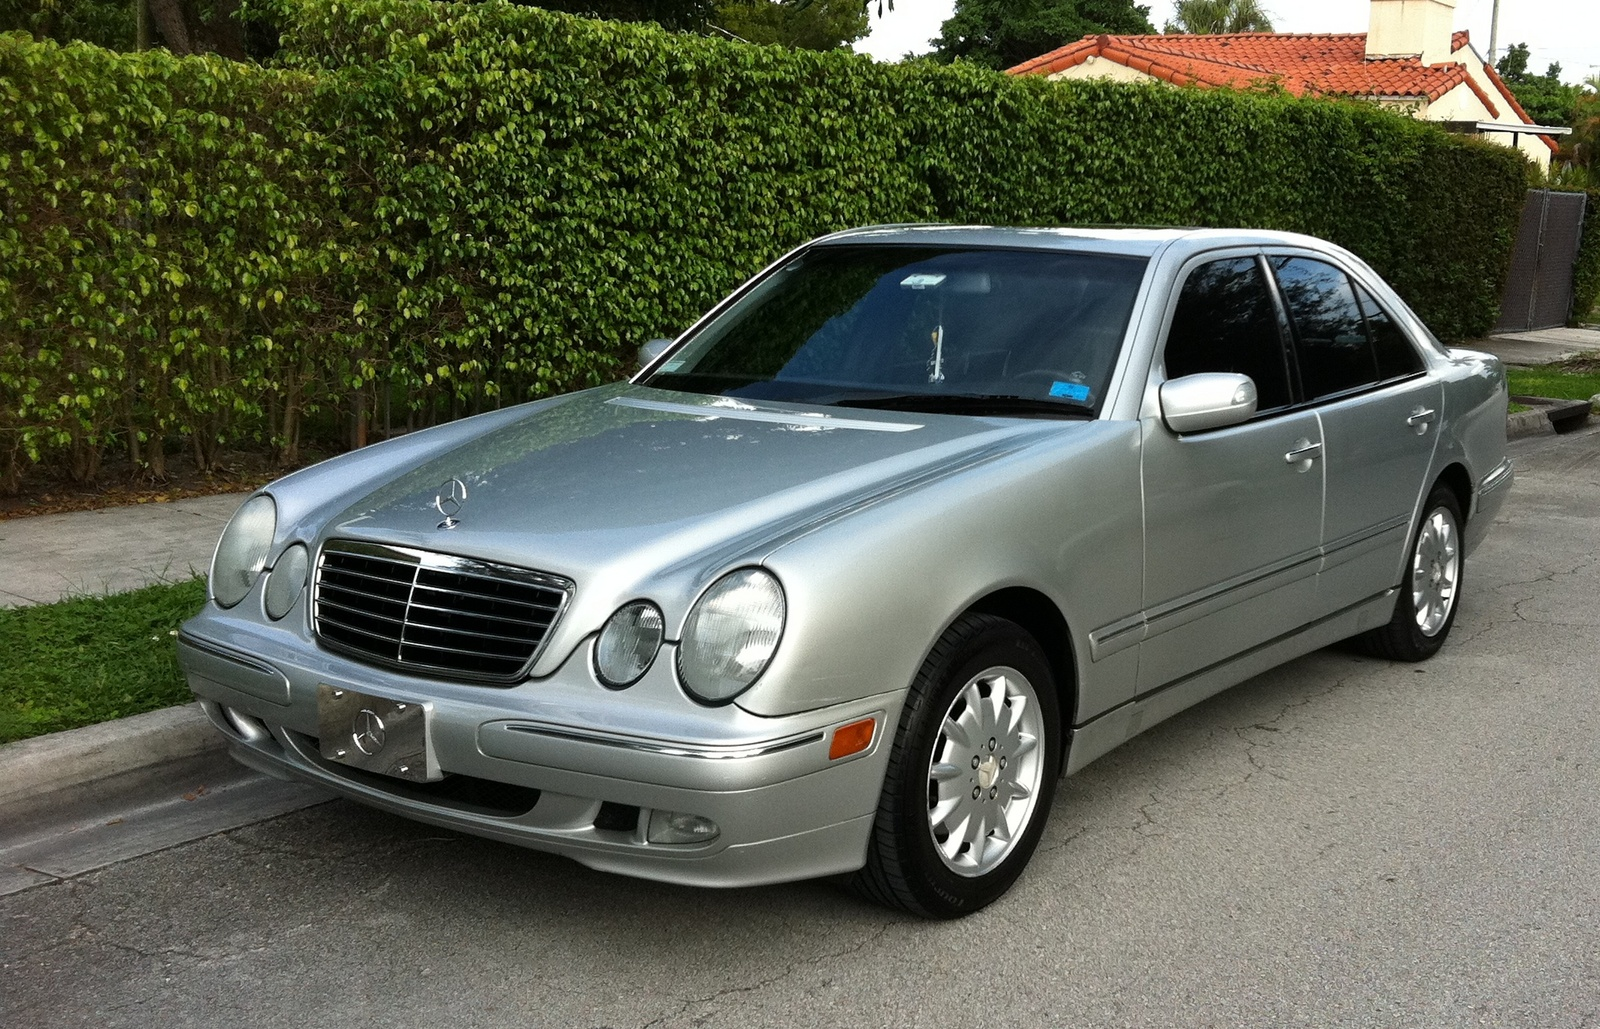 2001 mercedes benz e class pictures cargurus. Black Bedroom Furniture Sets. Home Design Ideas